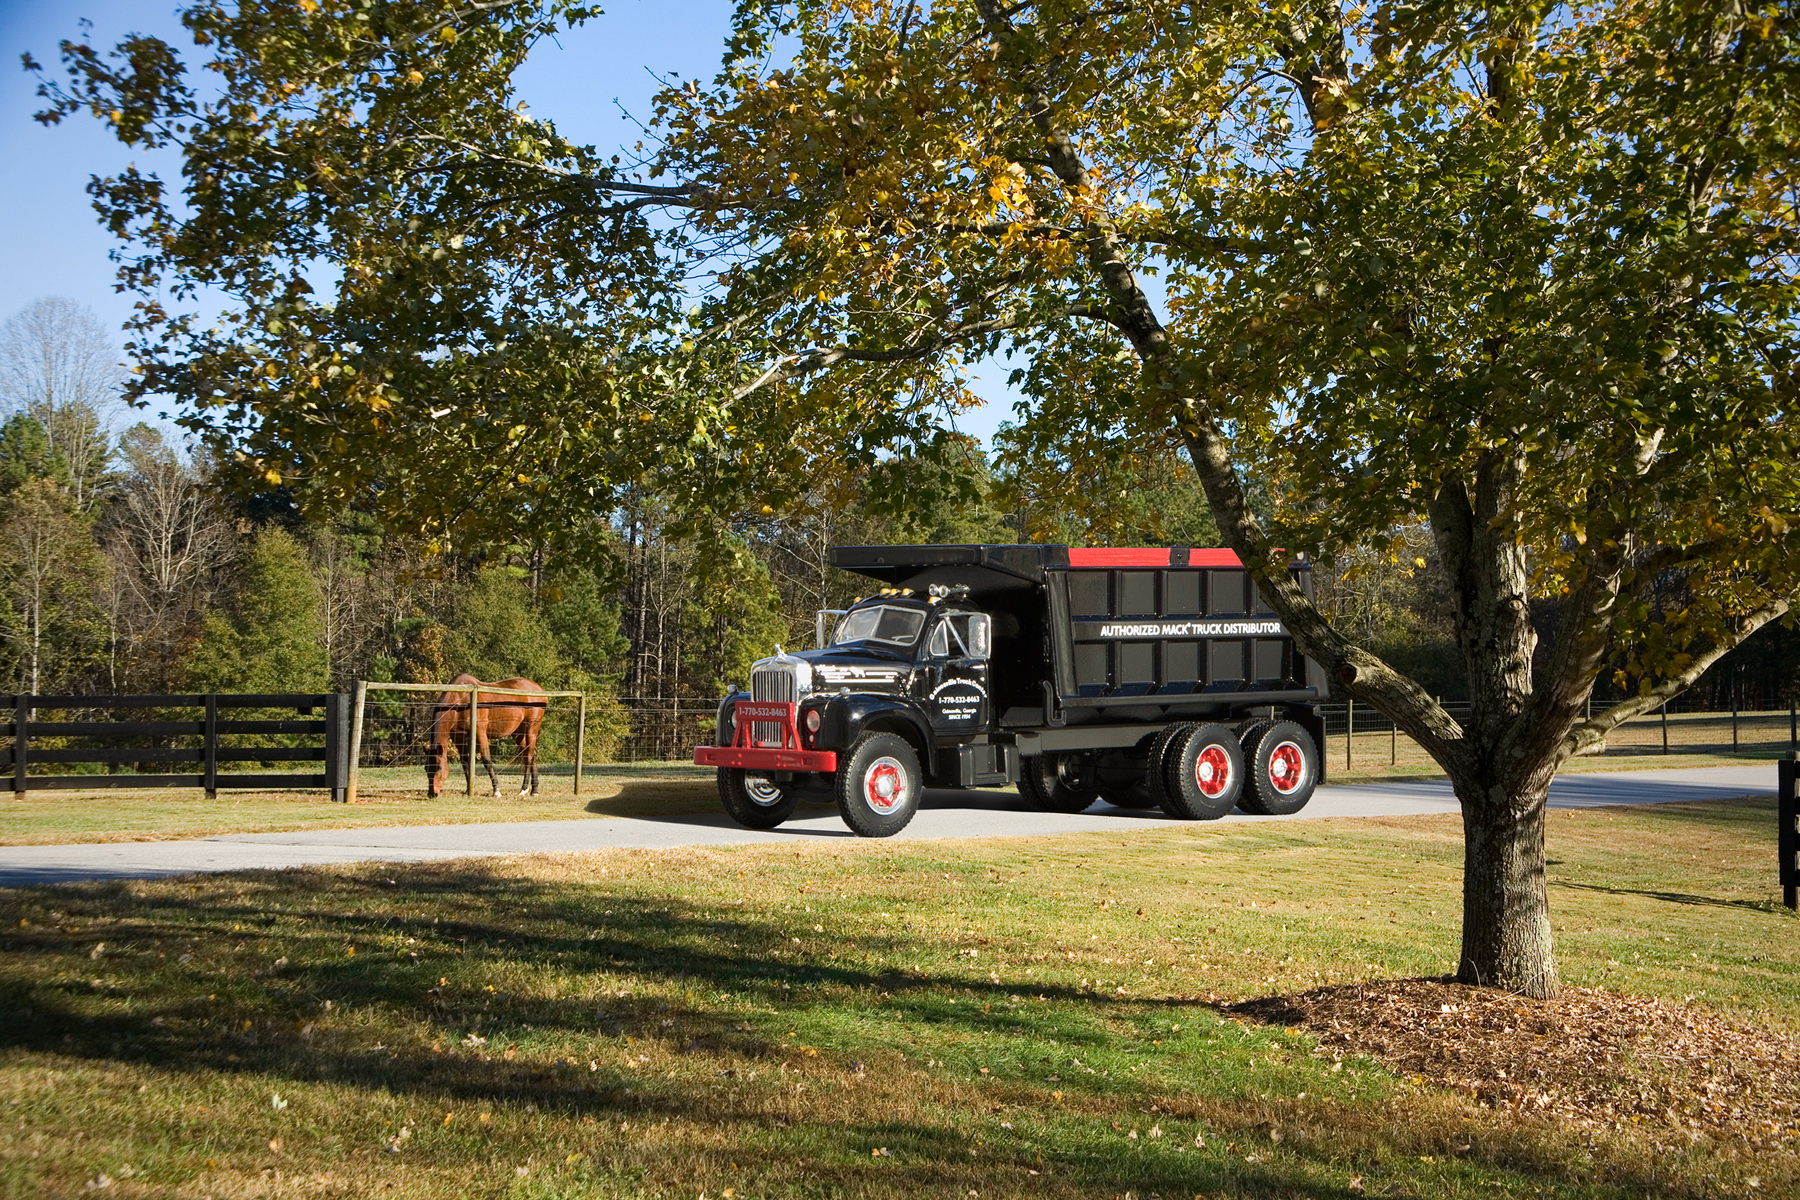 Dumptruck on the farm